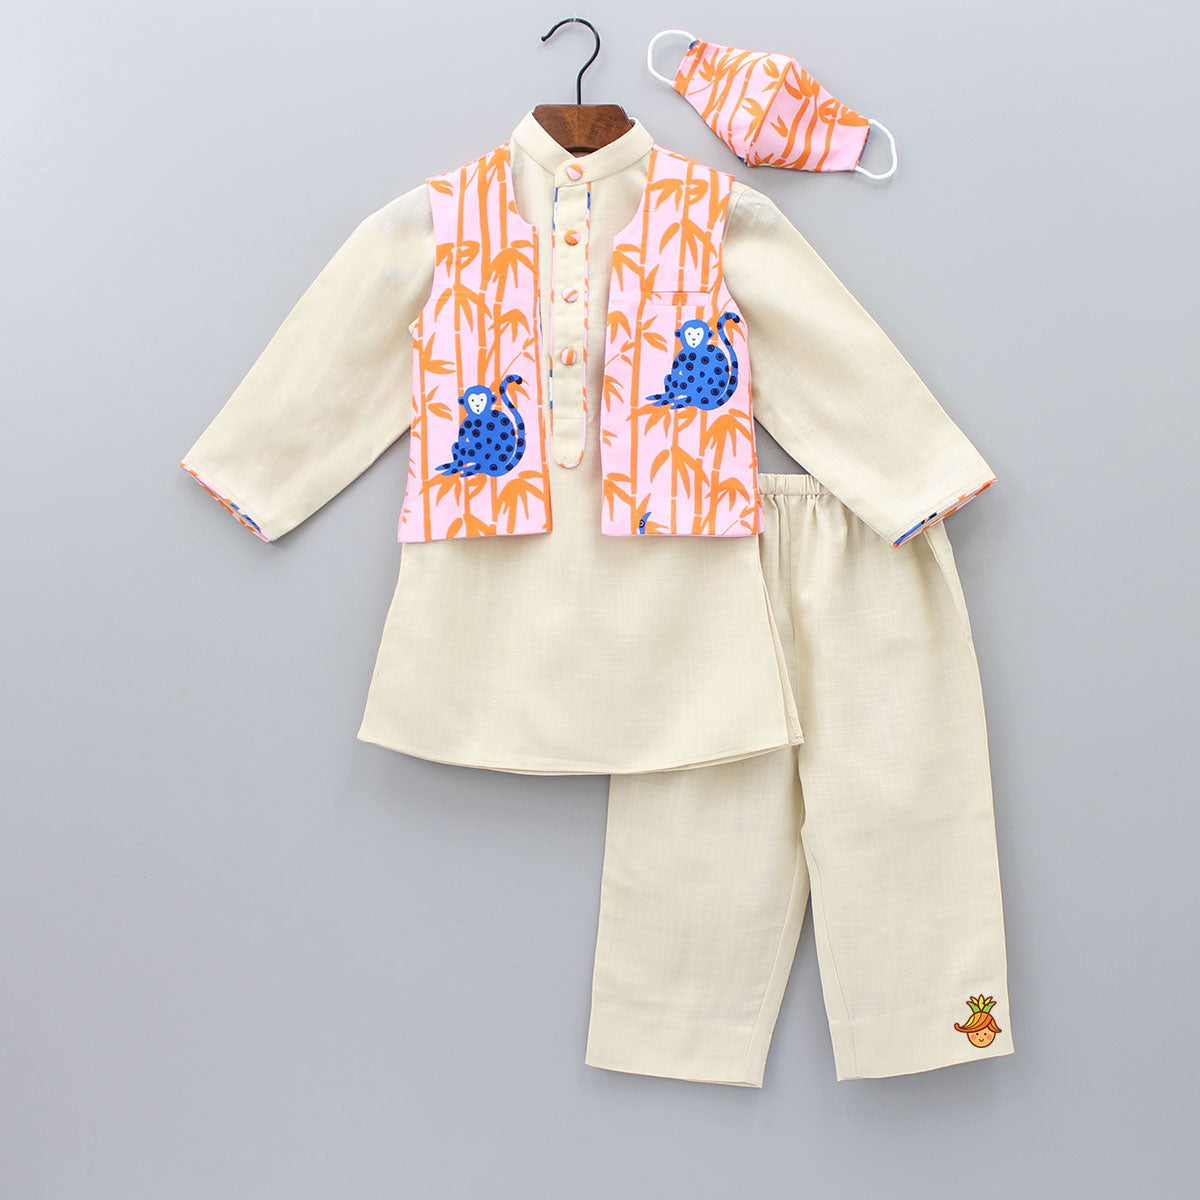 Pre Order: Kurta And Pyjama With Monkey Print Open Jacket And Mask